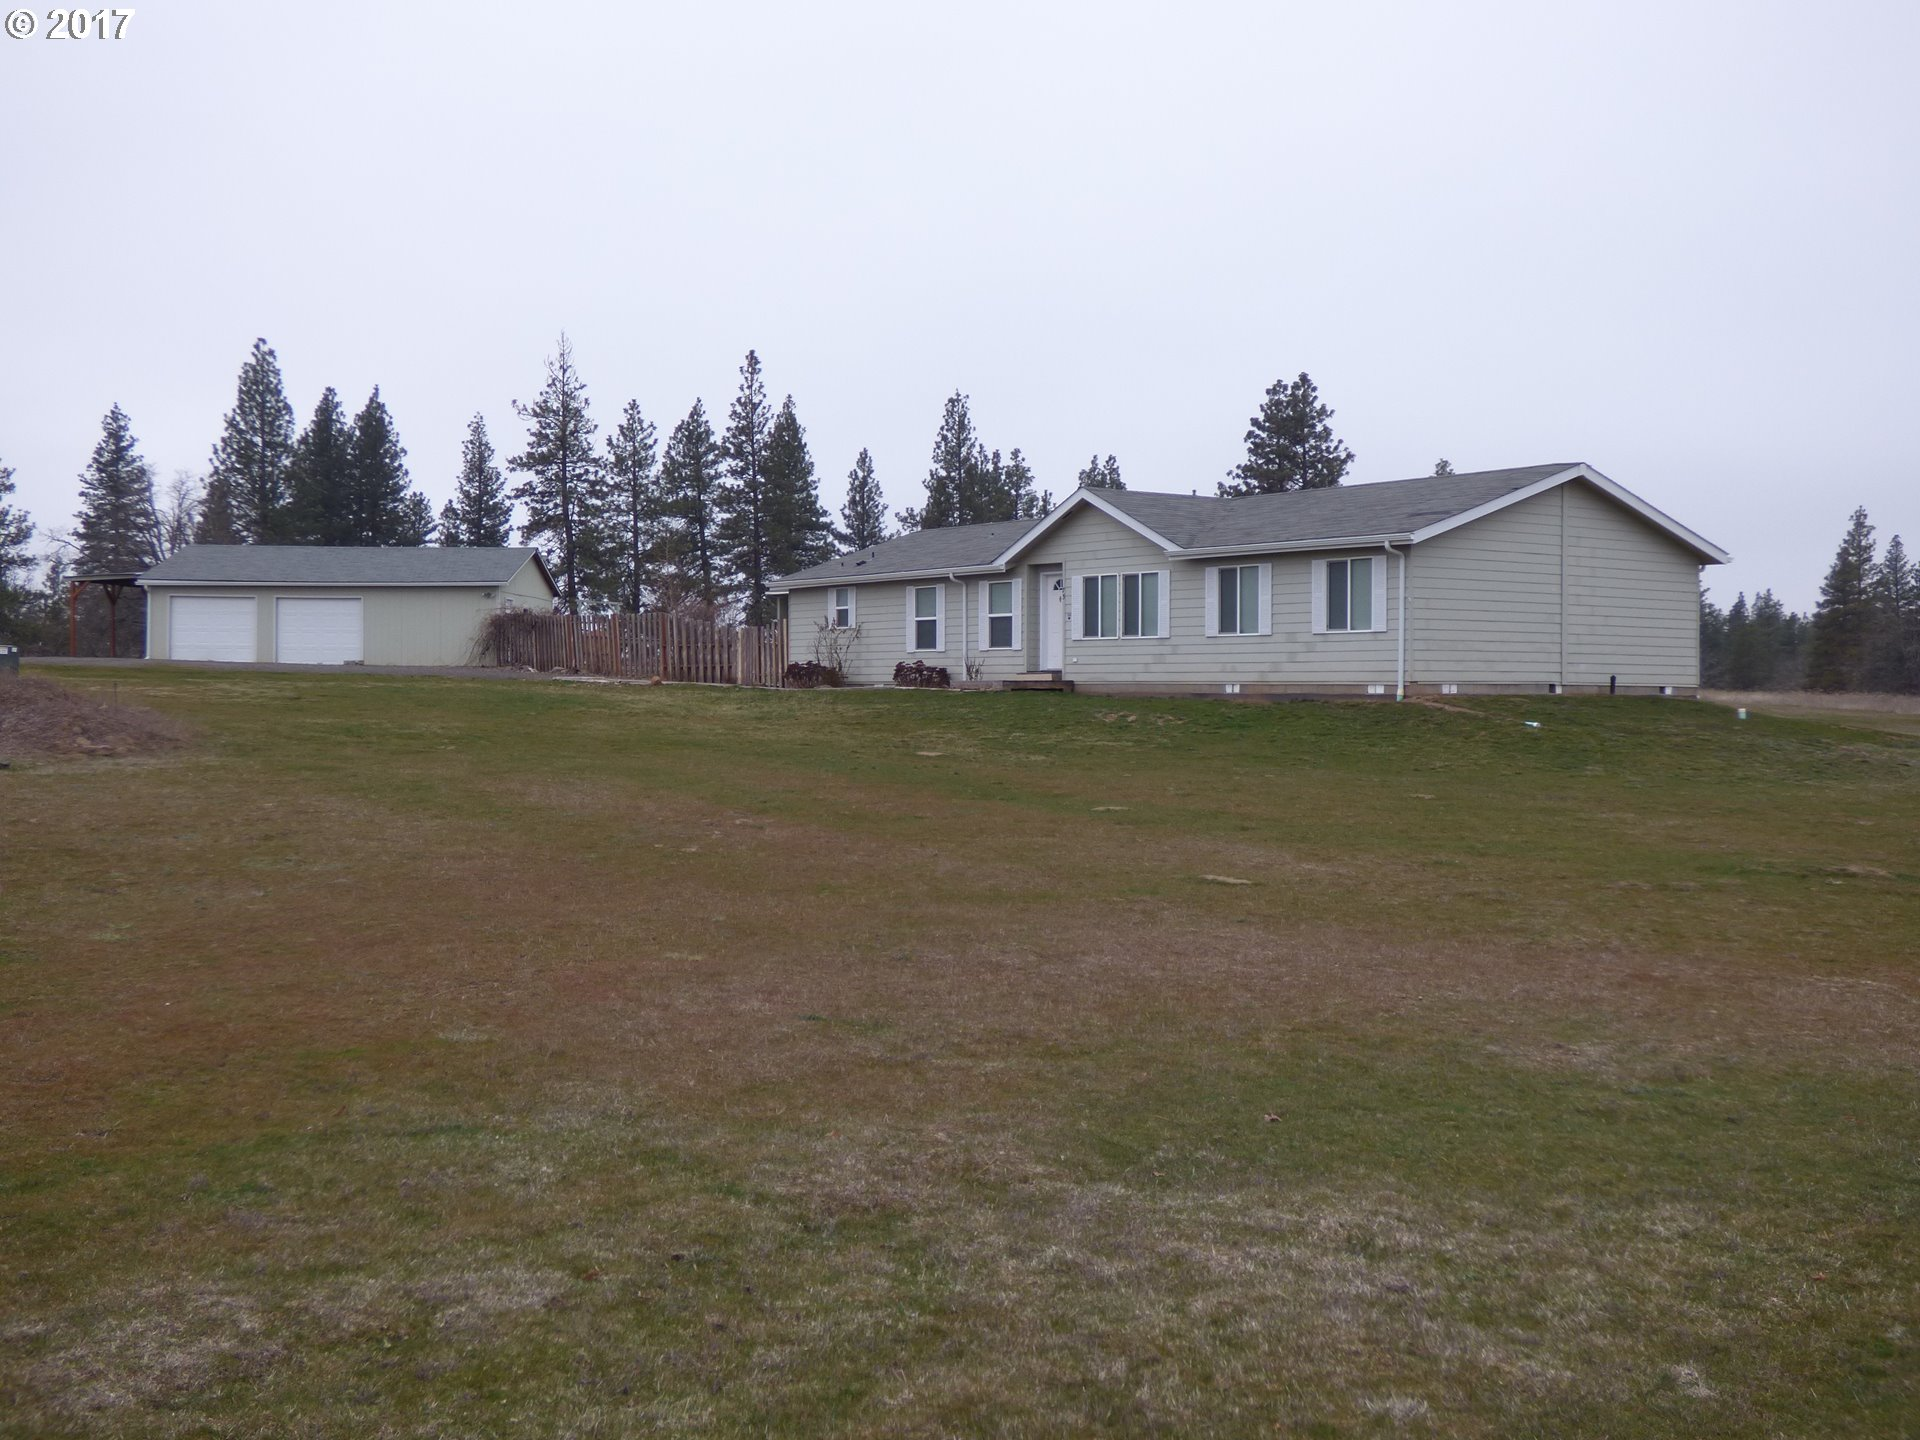 75 SARA VIEW DR, GOLDENDALE, WA 98620   Copper West